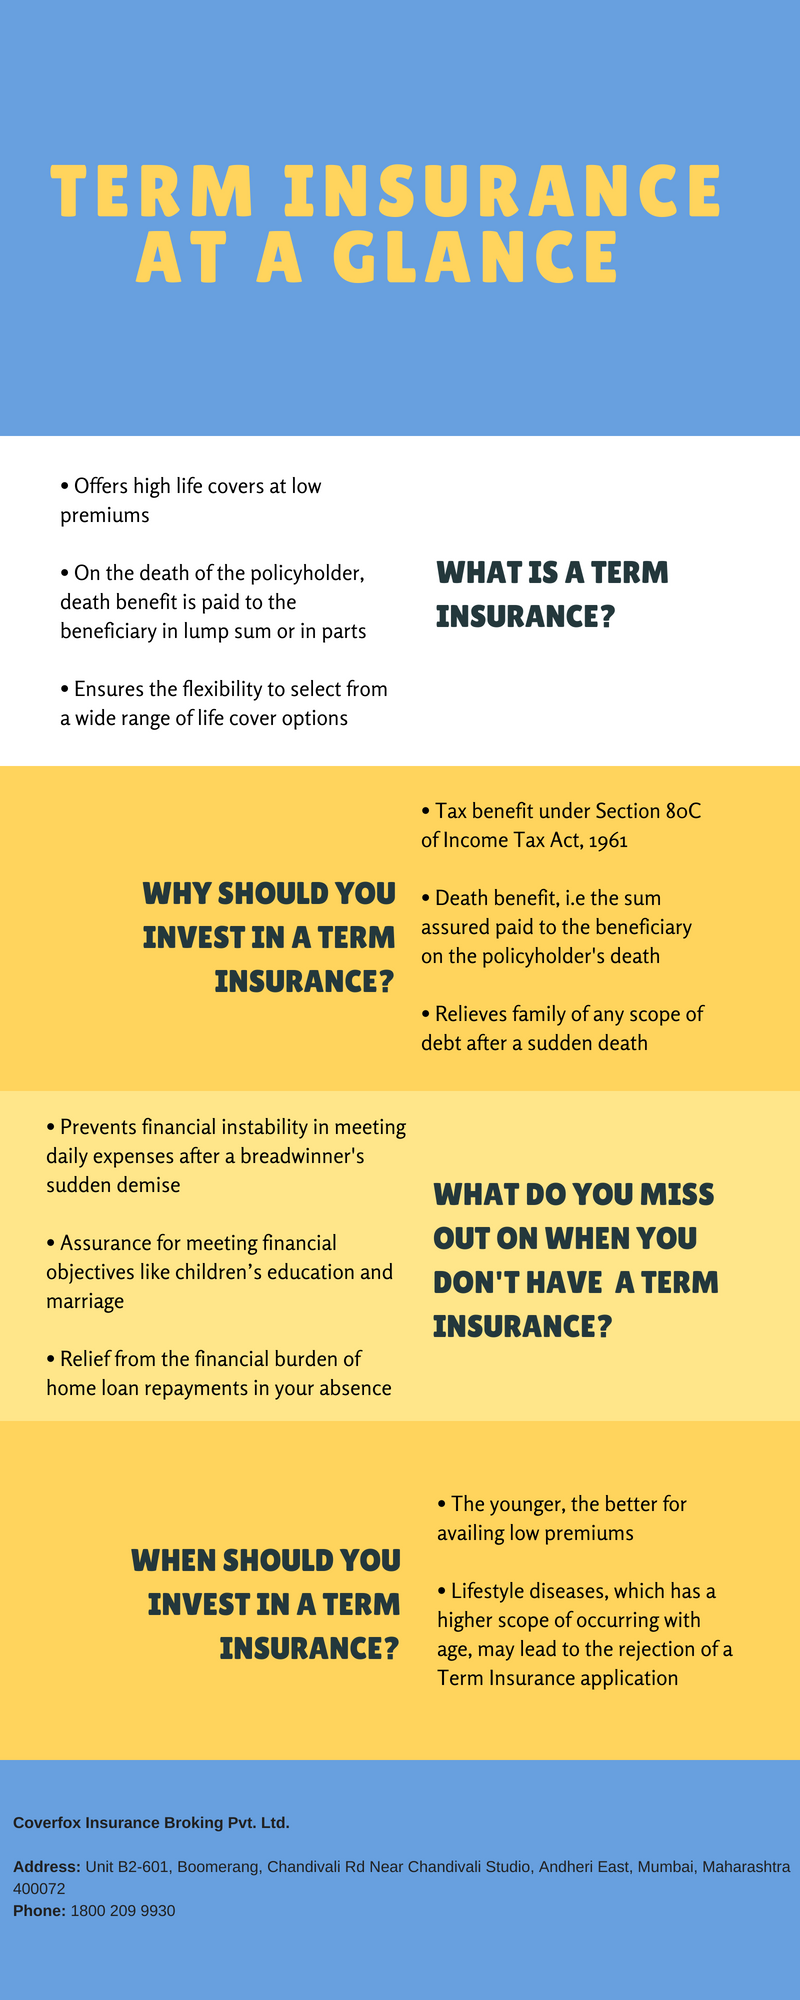 Know the Importance of Term Insurance in Today's Life